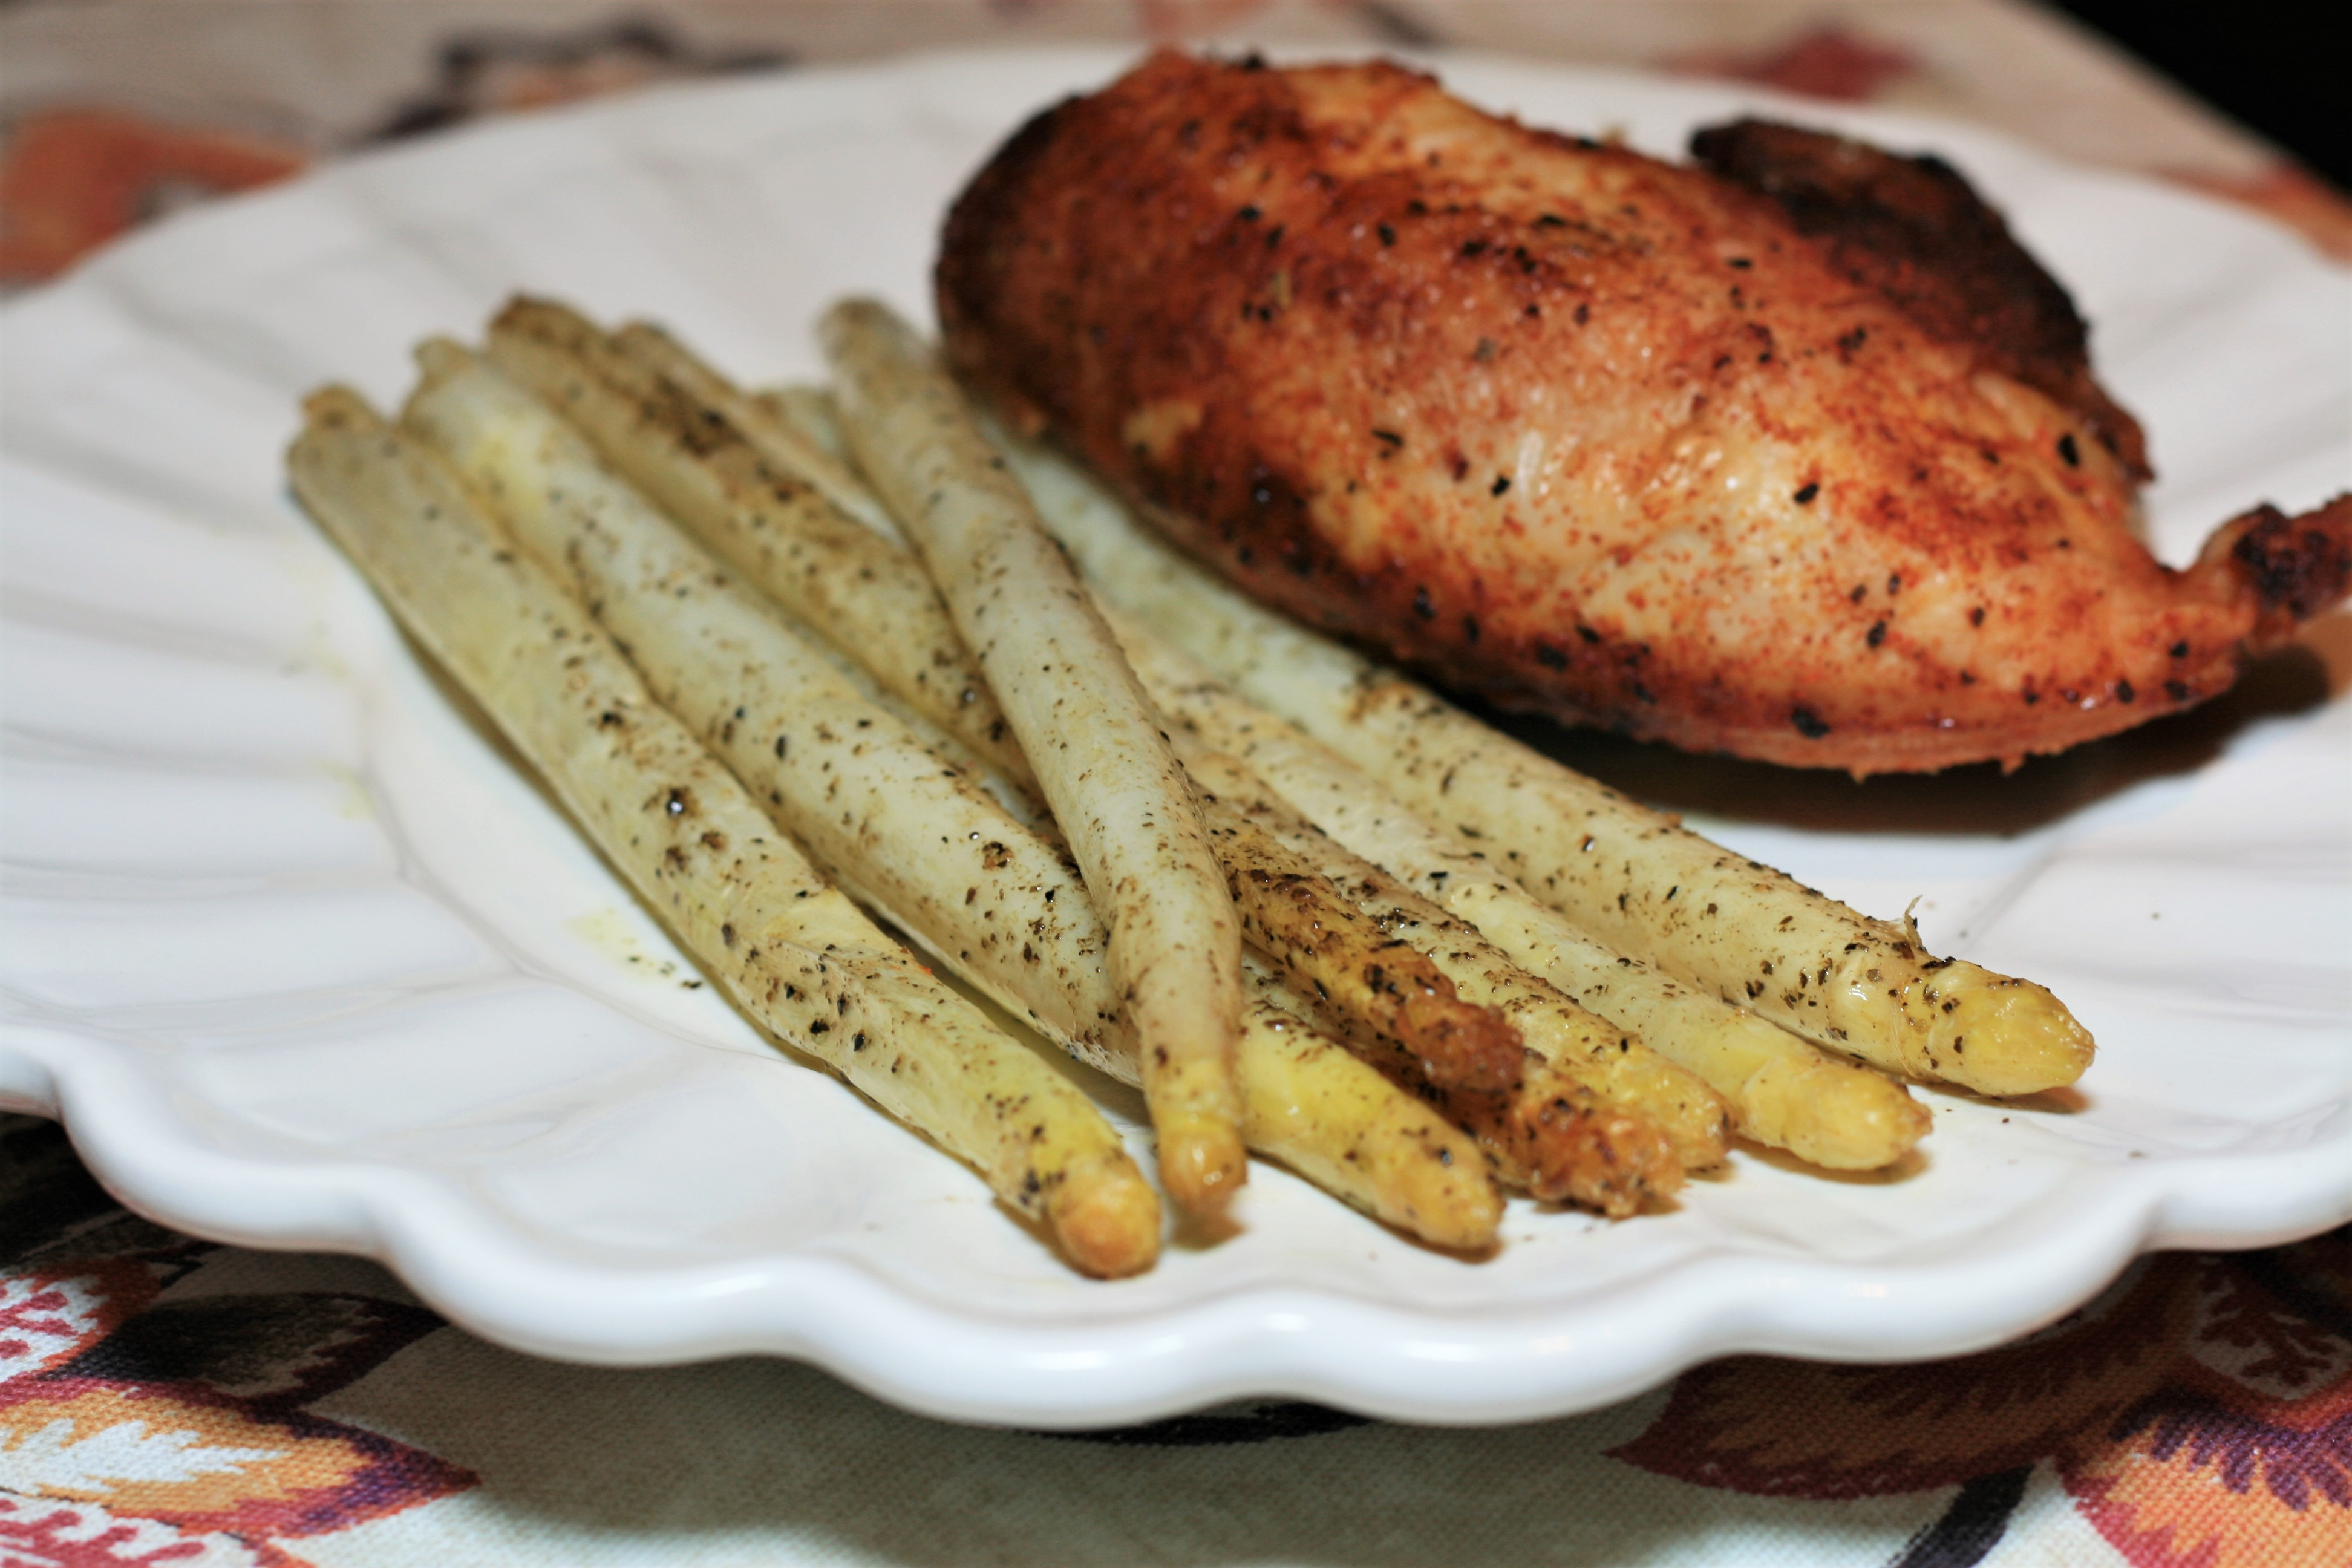 Roasted White Asparagus with Herbes de Provence